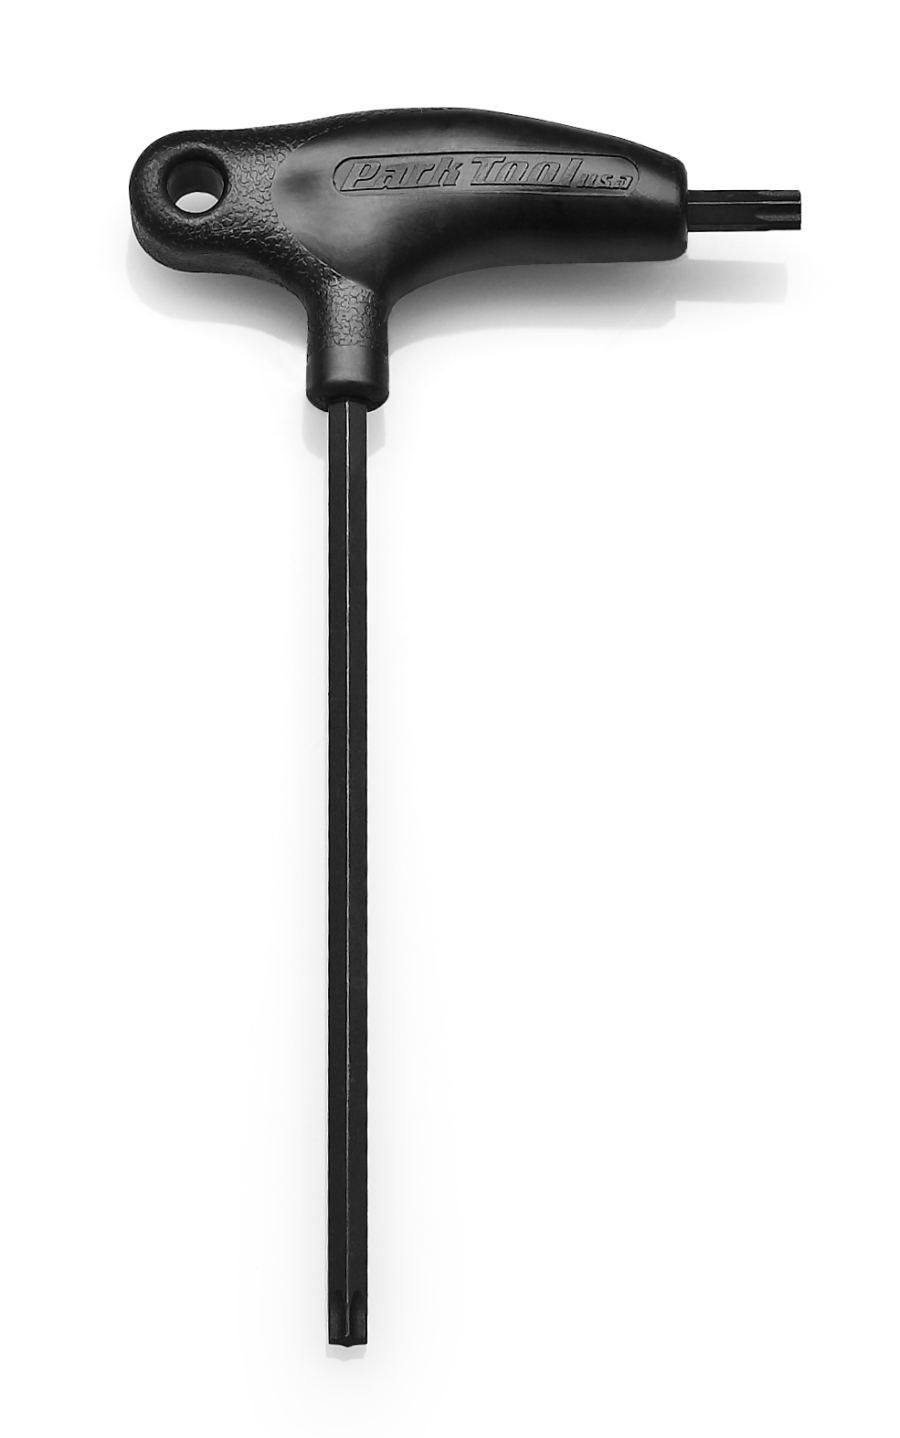 Previous version of the Park Tool PH-T40 T40 P-Handle Torx® Compatible Wrench with black handle, enlarged